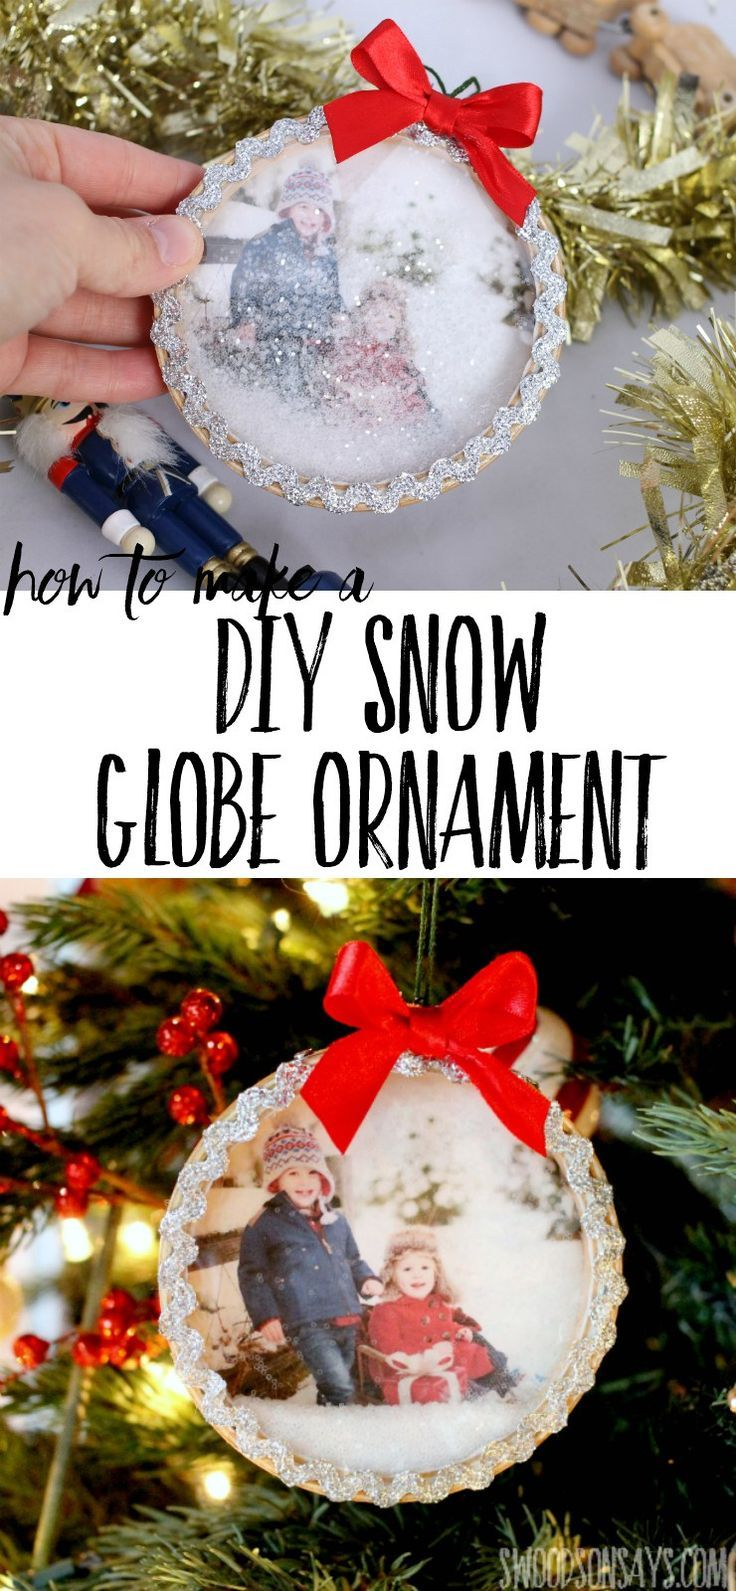 See how easy it is to make this super fun glitter shaker ornament! A DIY snow globe ornament that the kids can play with safely, with a personalized photo. #diysnowglobe #diychristmasornament #christmasornamenttutorial